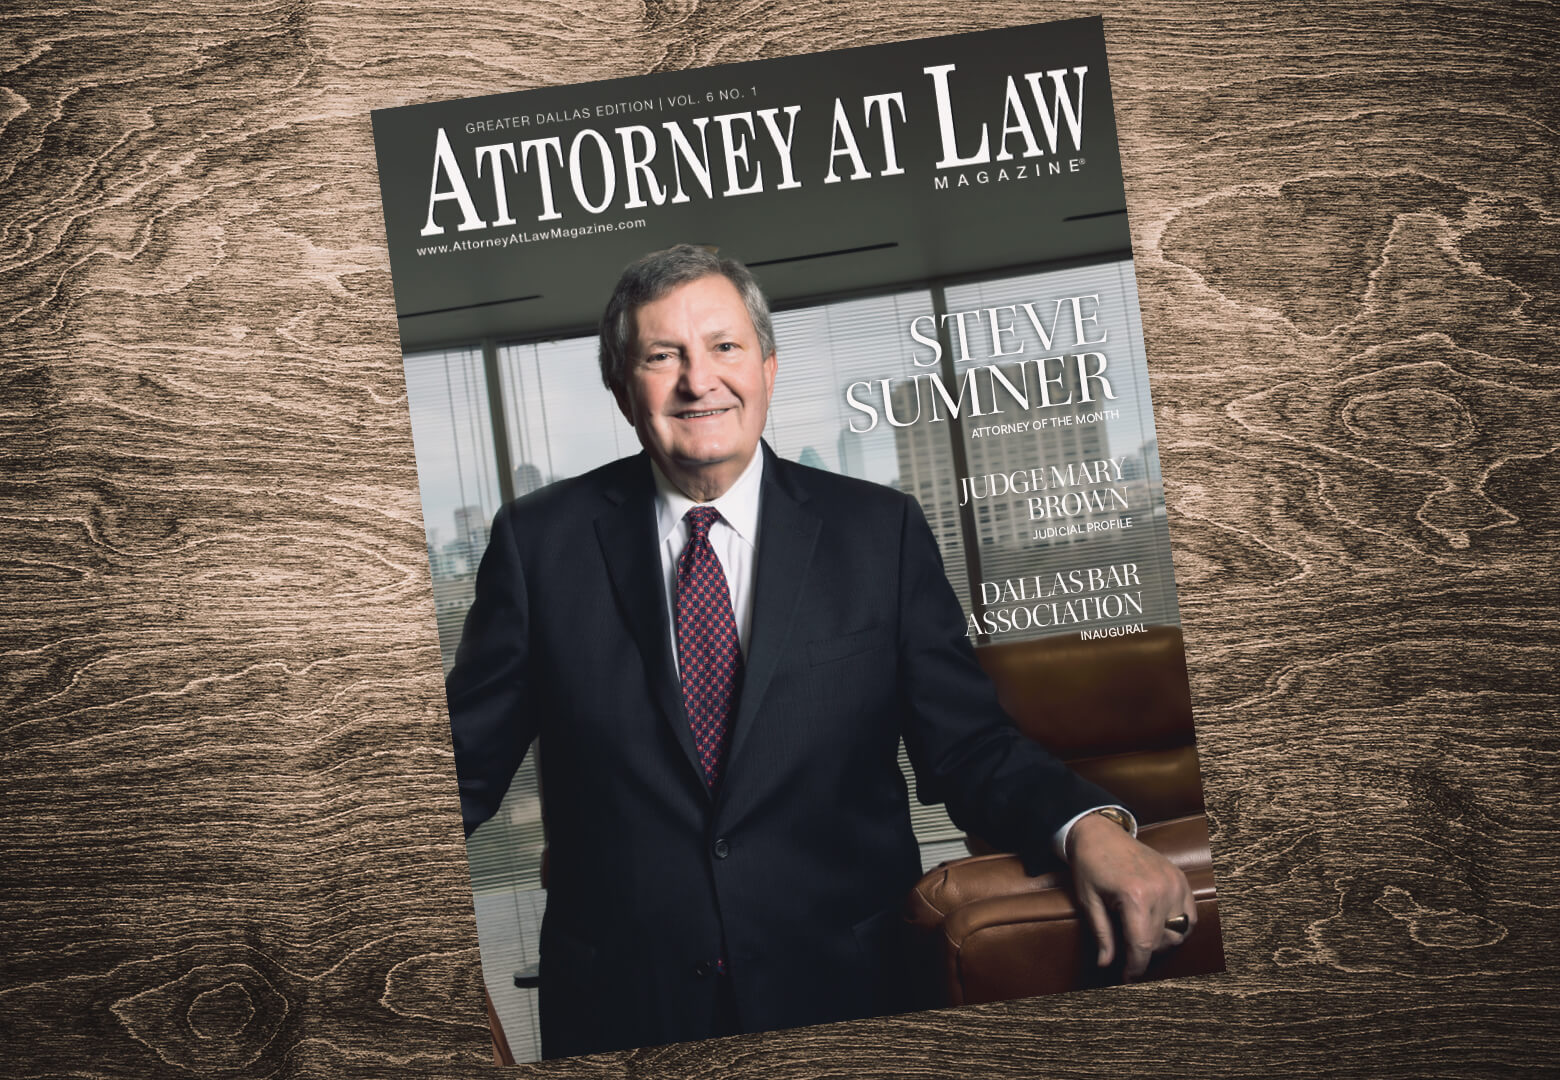 Attorney at Law Magazine Phoenix Vol. 11 No. 3